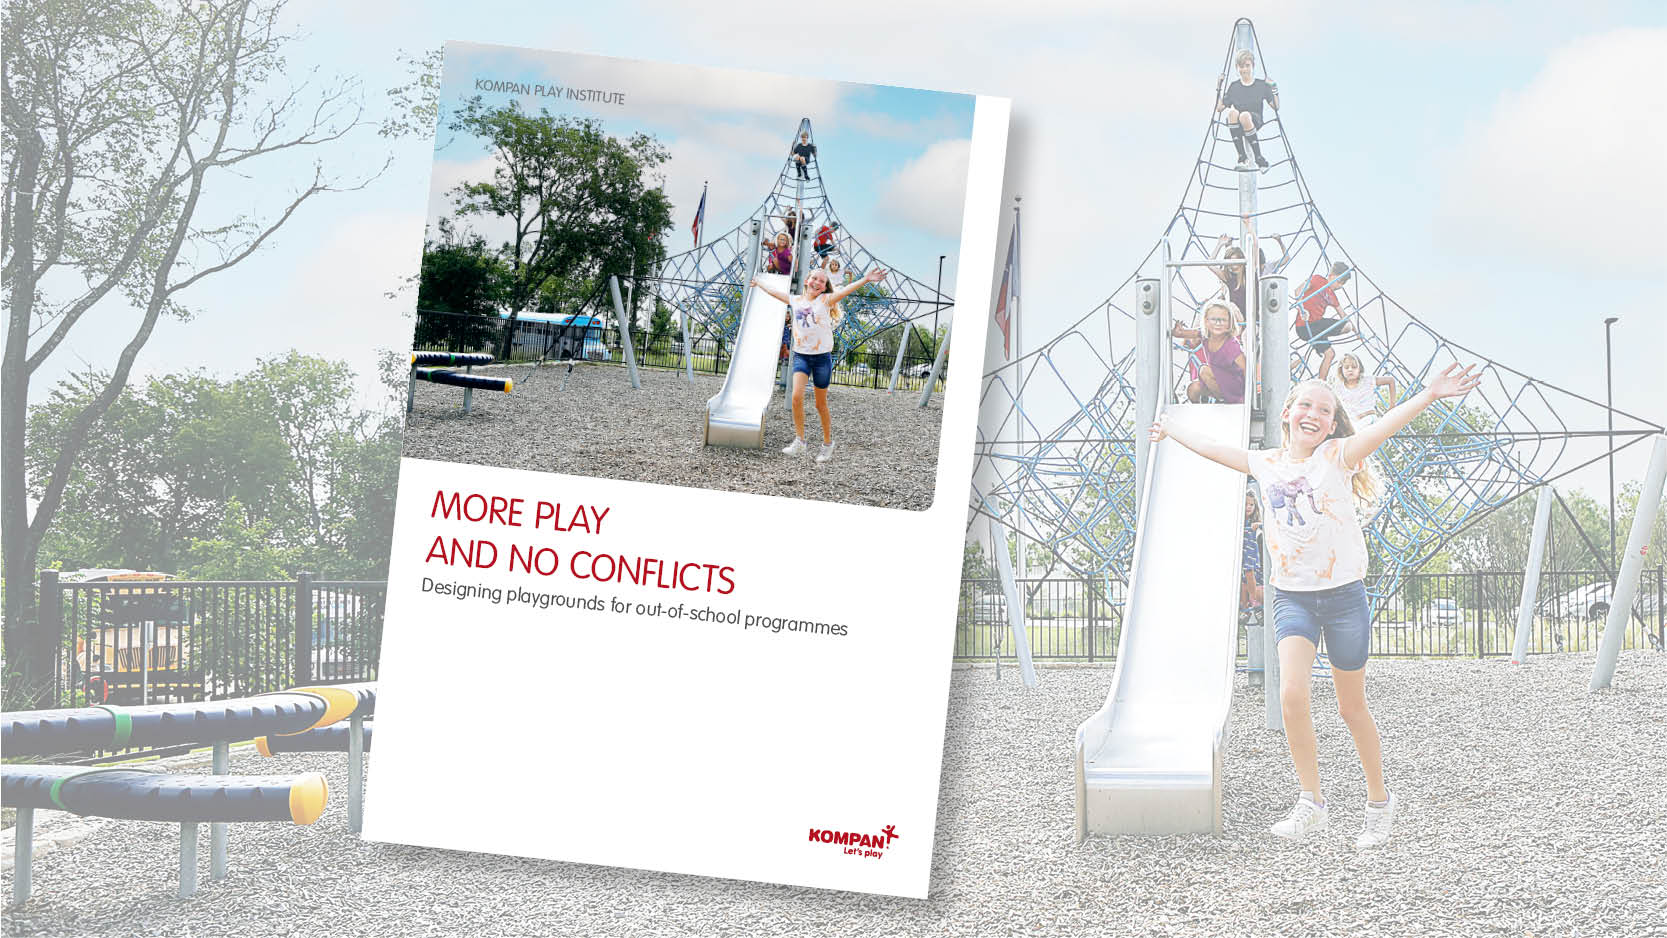 More Play and No Conflicts